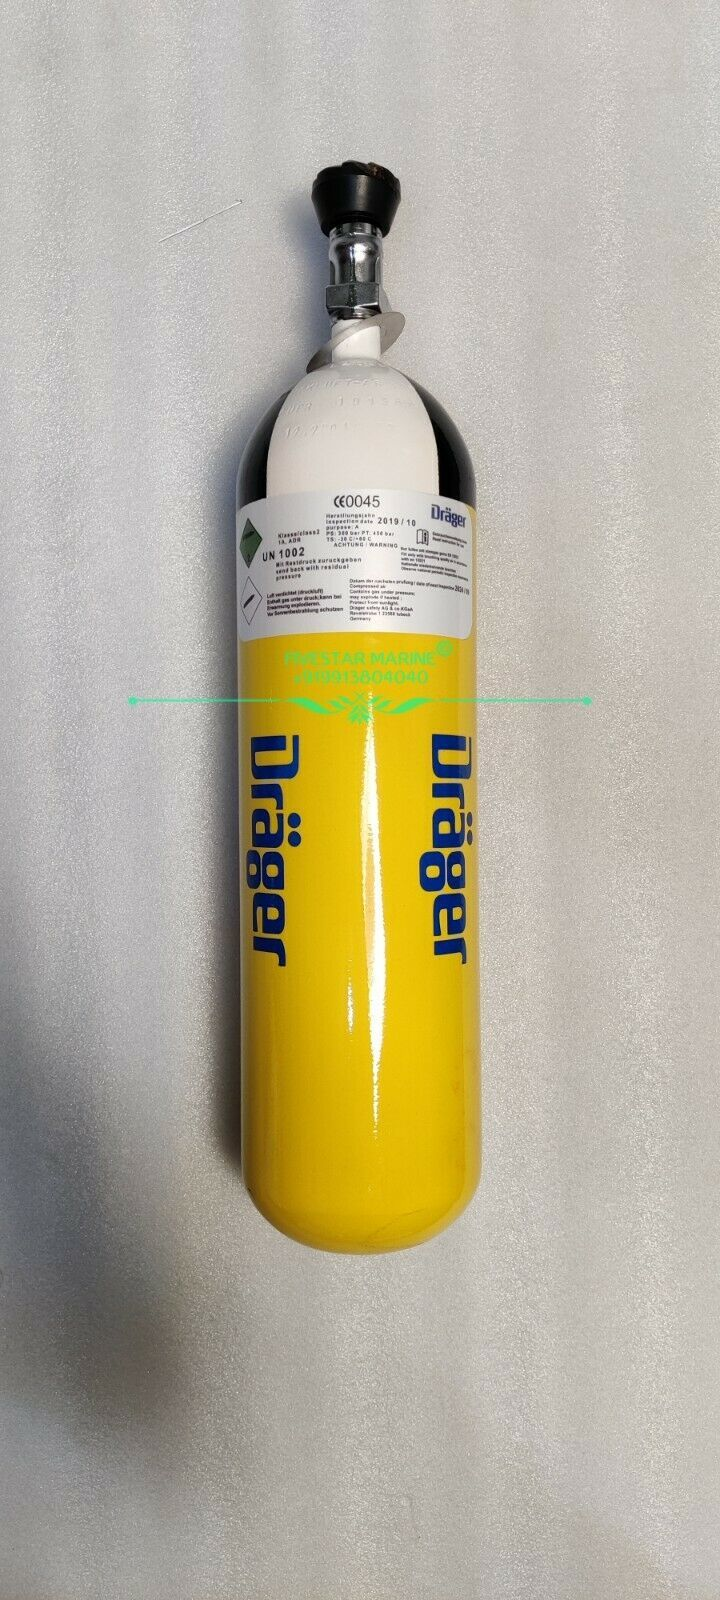 Drager Breathing Air Cylinder